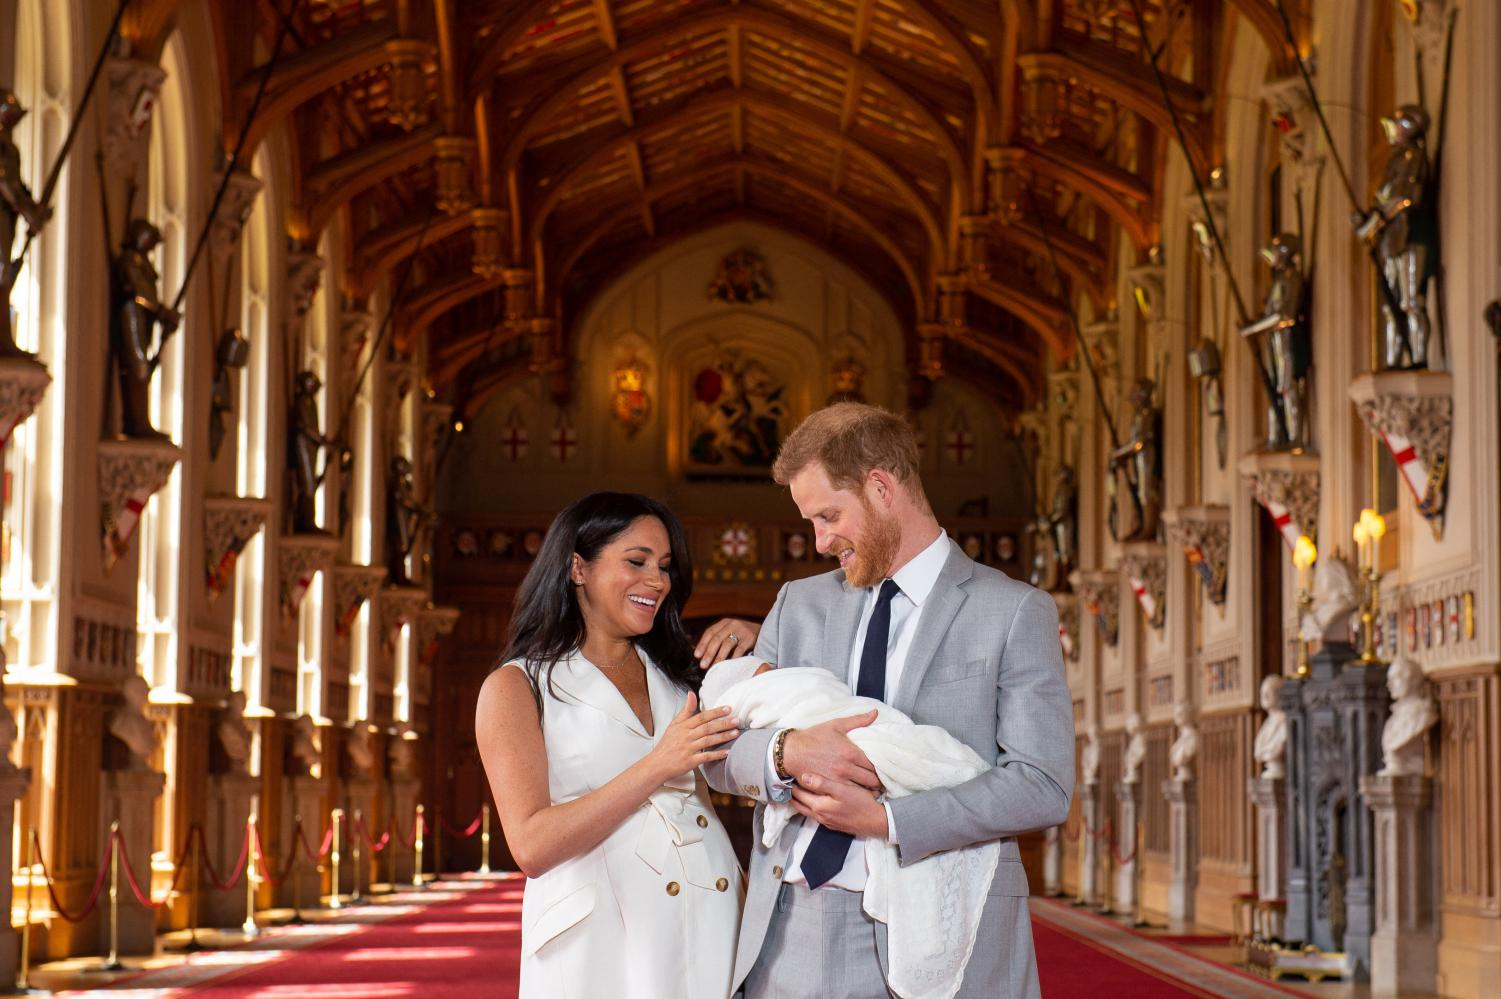 The Duke and Duchess of Sussex with their baby son, who was born on Monday morning, during a photocall in St George's Hall at Windsor Castle in Berkshire, UK.